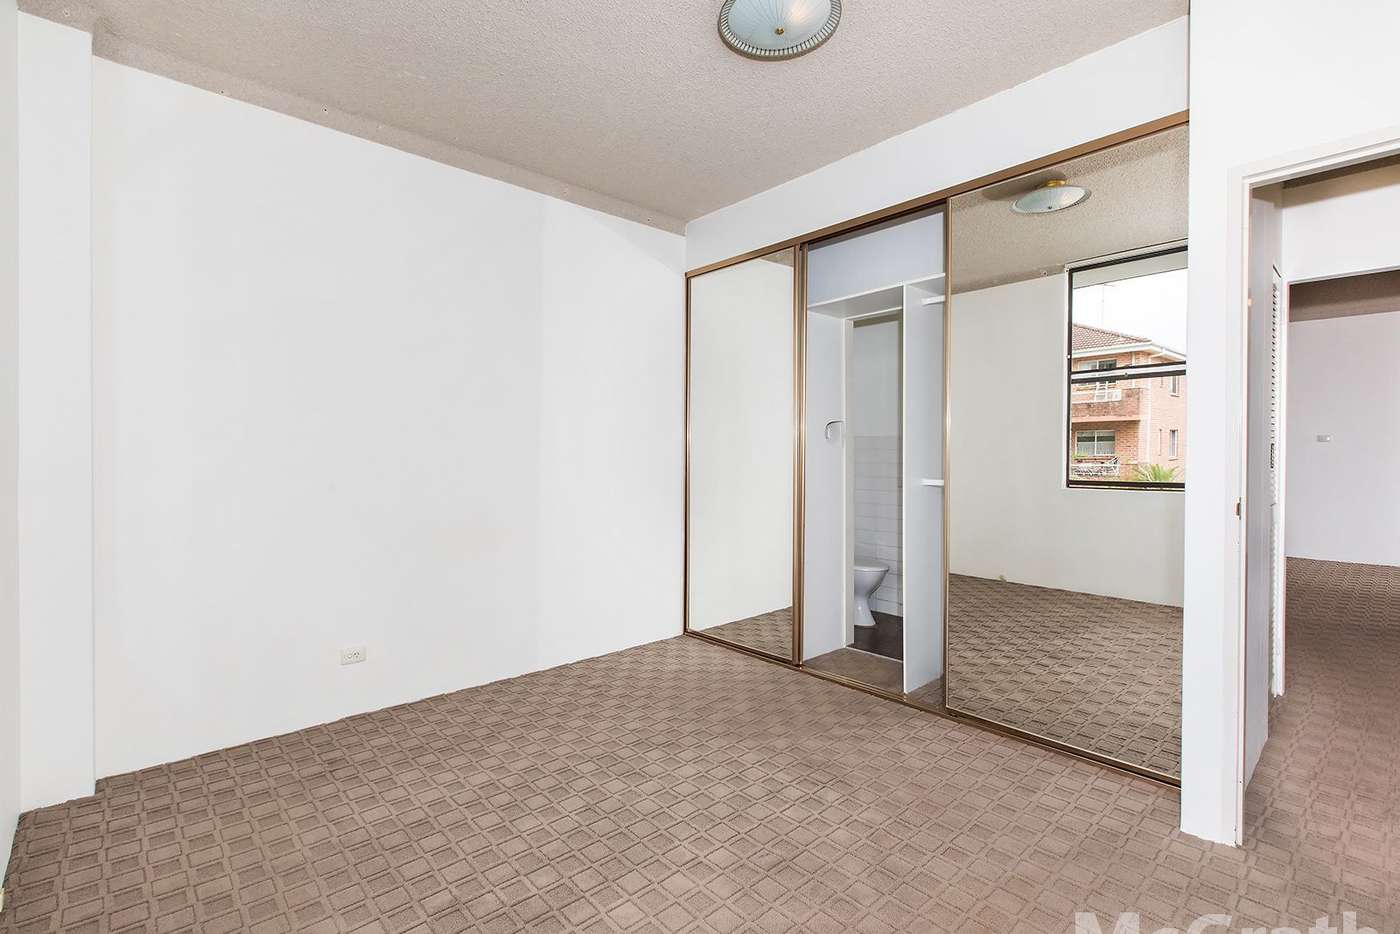 Fifth view of Homely apartment listing, 6/13-19 Princess Street, Brighton-le-sands NSW 2216